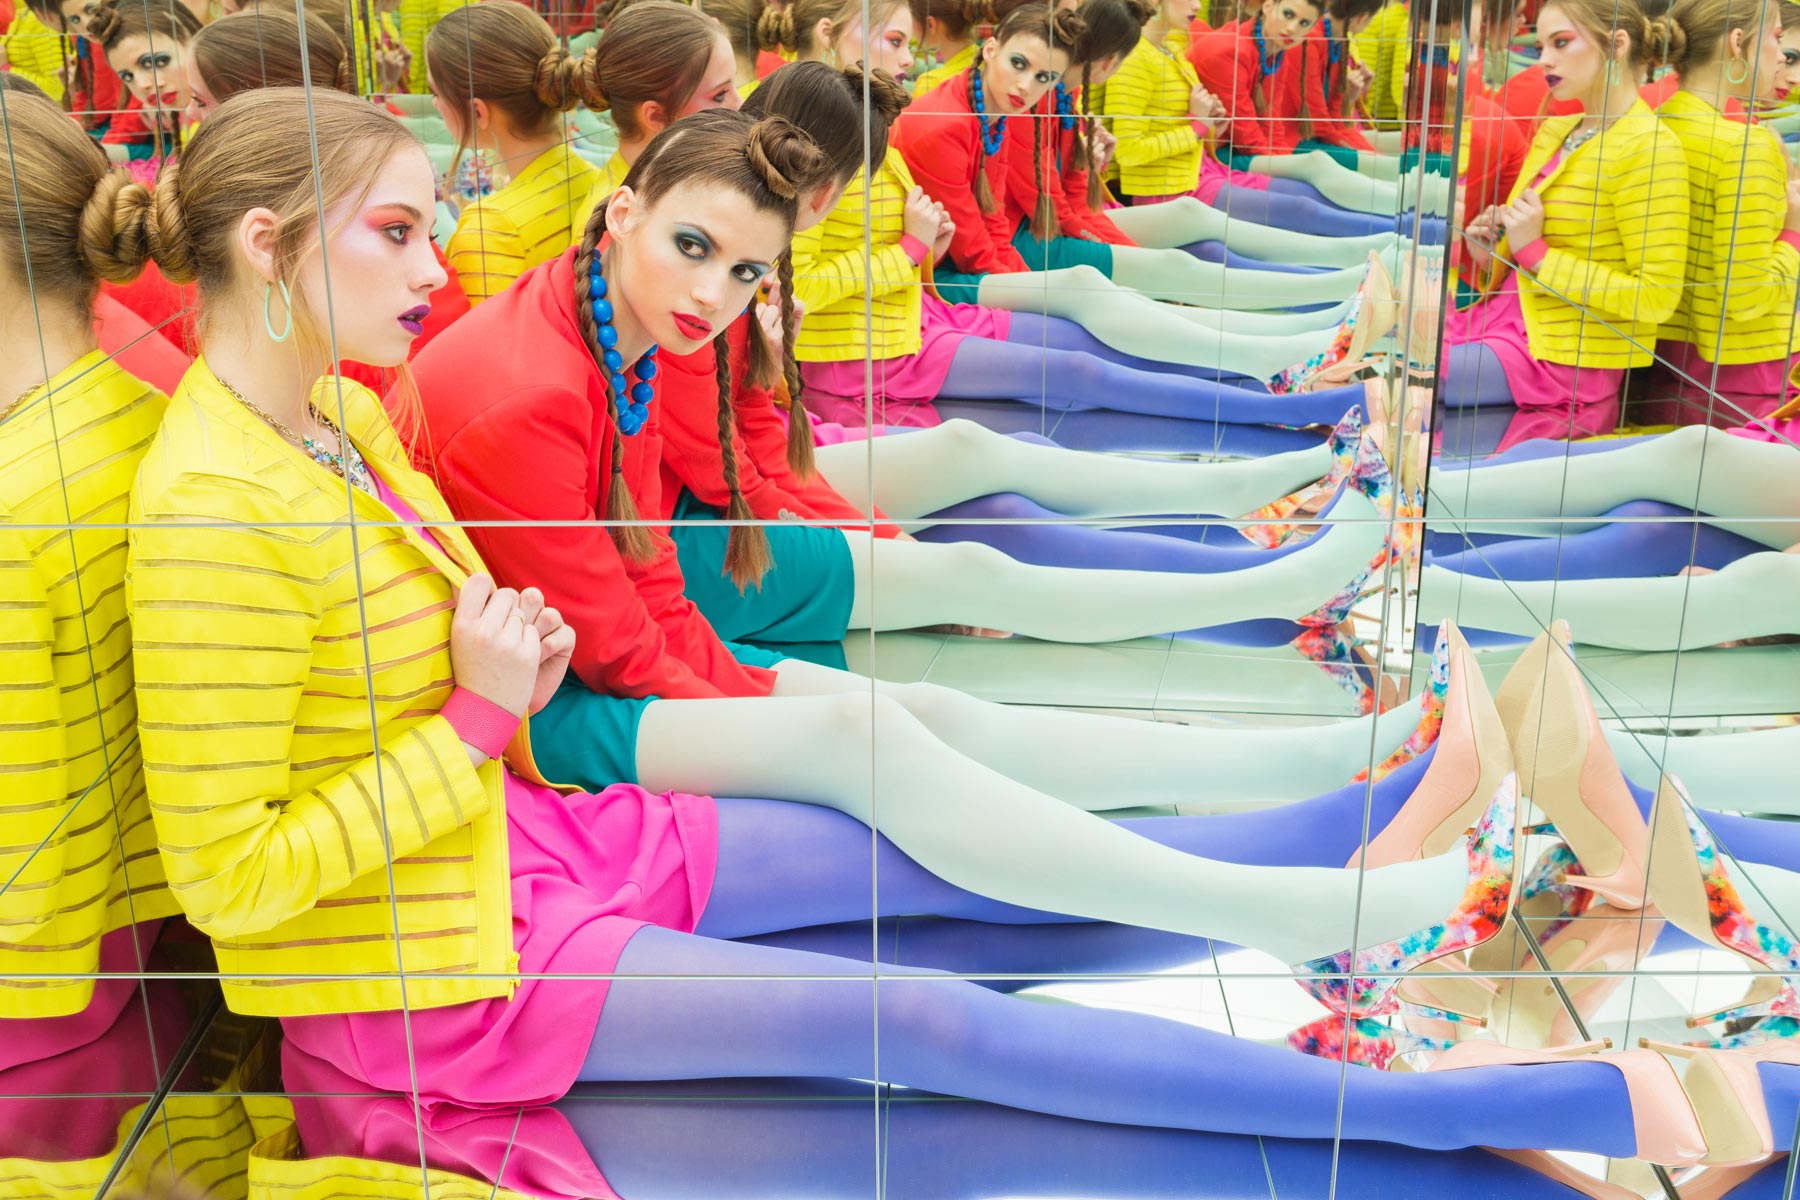 Fashion photography Portland - two woman with bright clothes in a mirror box by Michael Schmitt